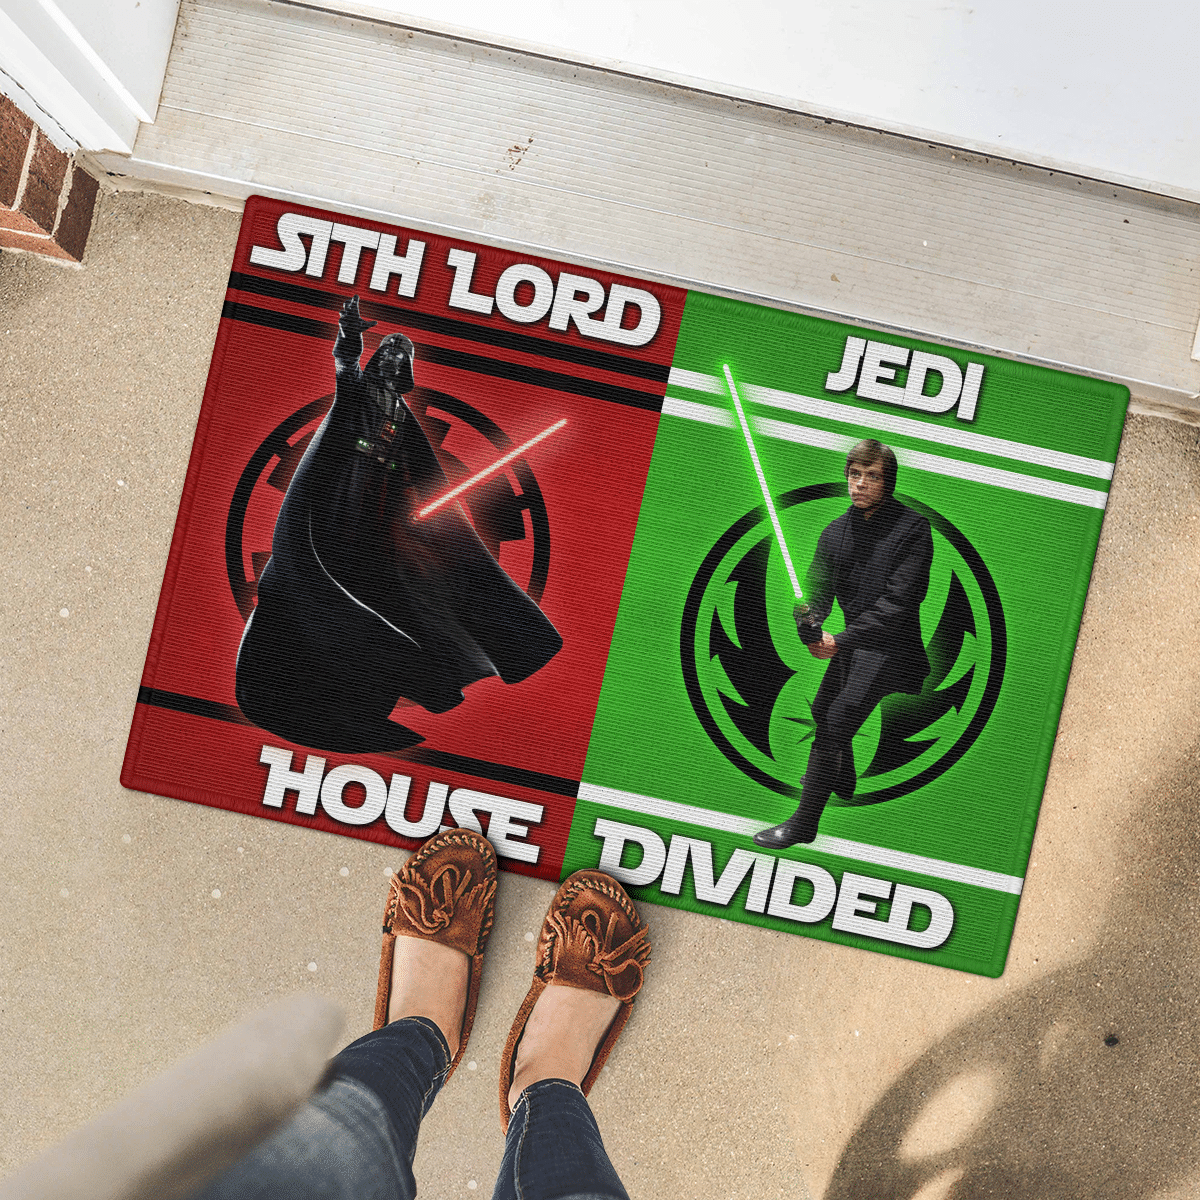 Sith Lord and Jedi house divided doormat 2